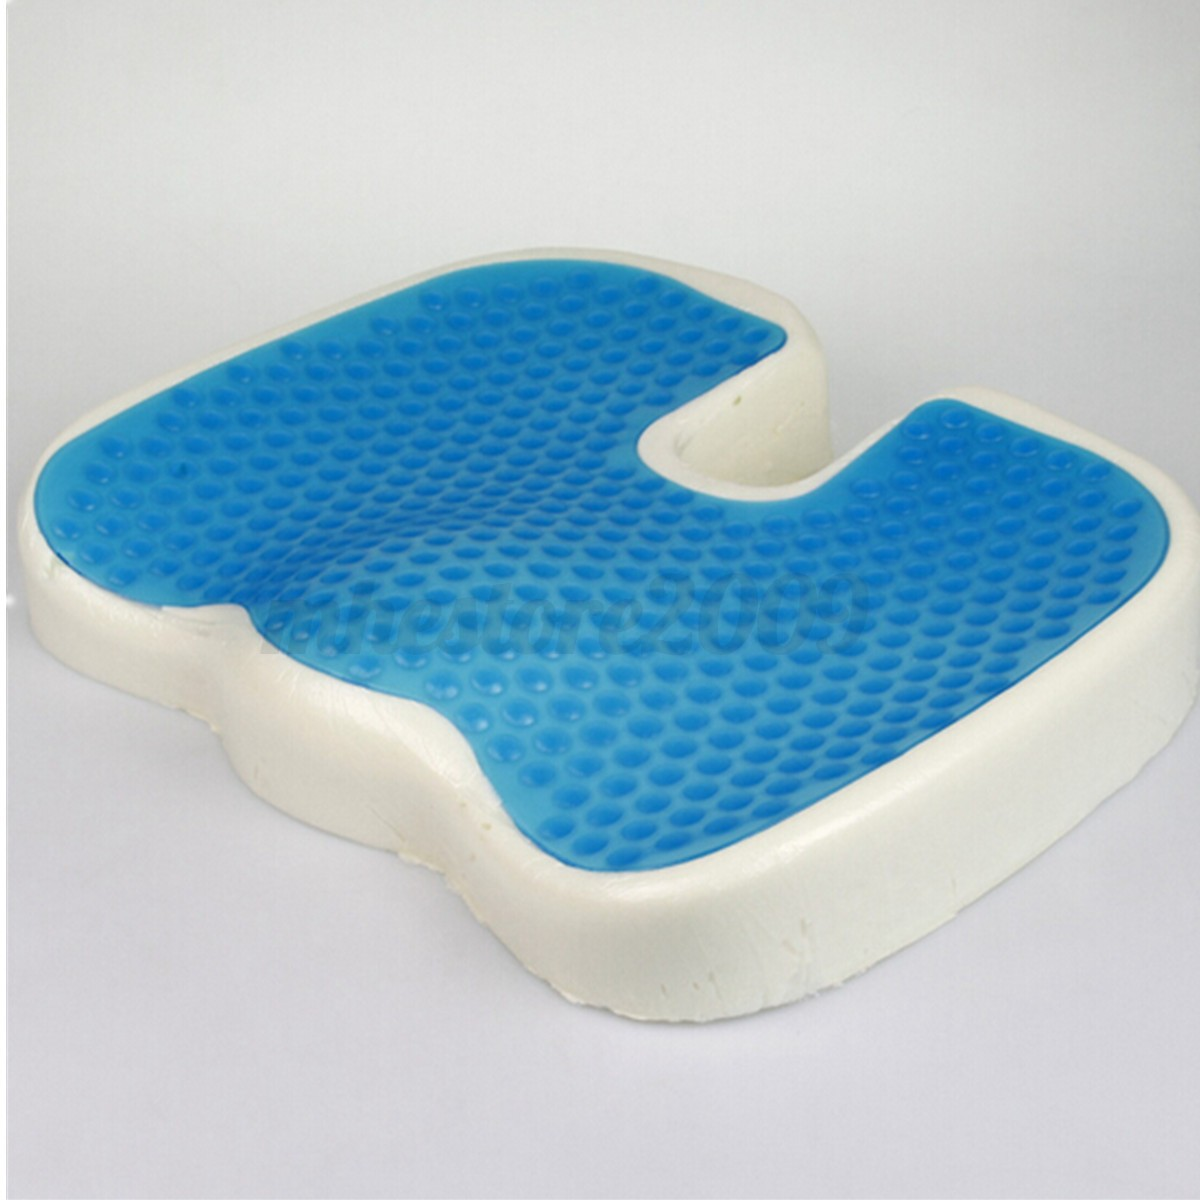 coccyx orthopedic gel enhanced comfort memory foam seat cushion car travel ebay. Black Bedroom Furniture Sets. Home Design Ideas